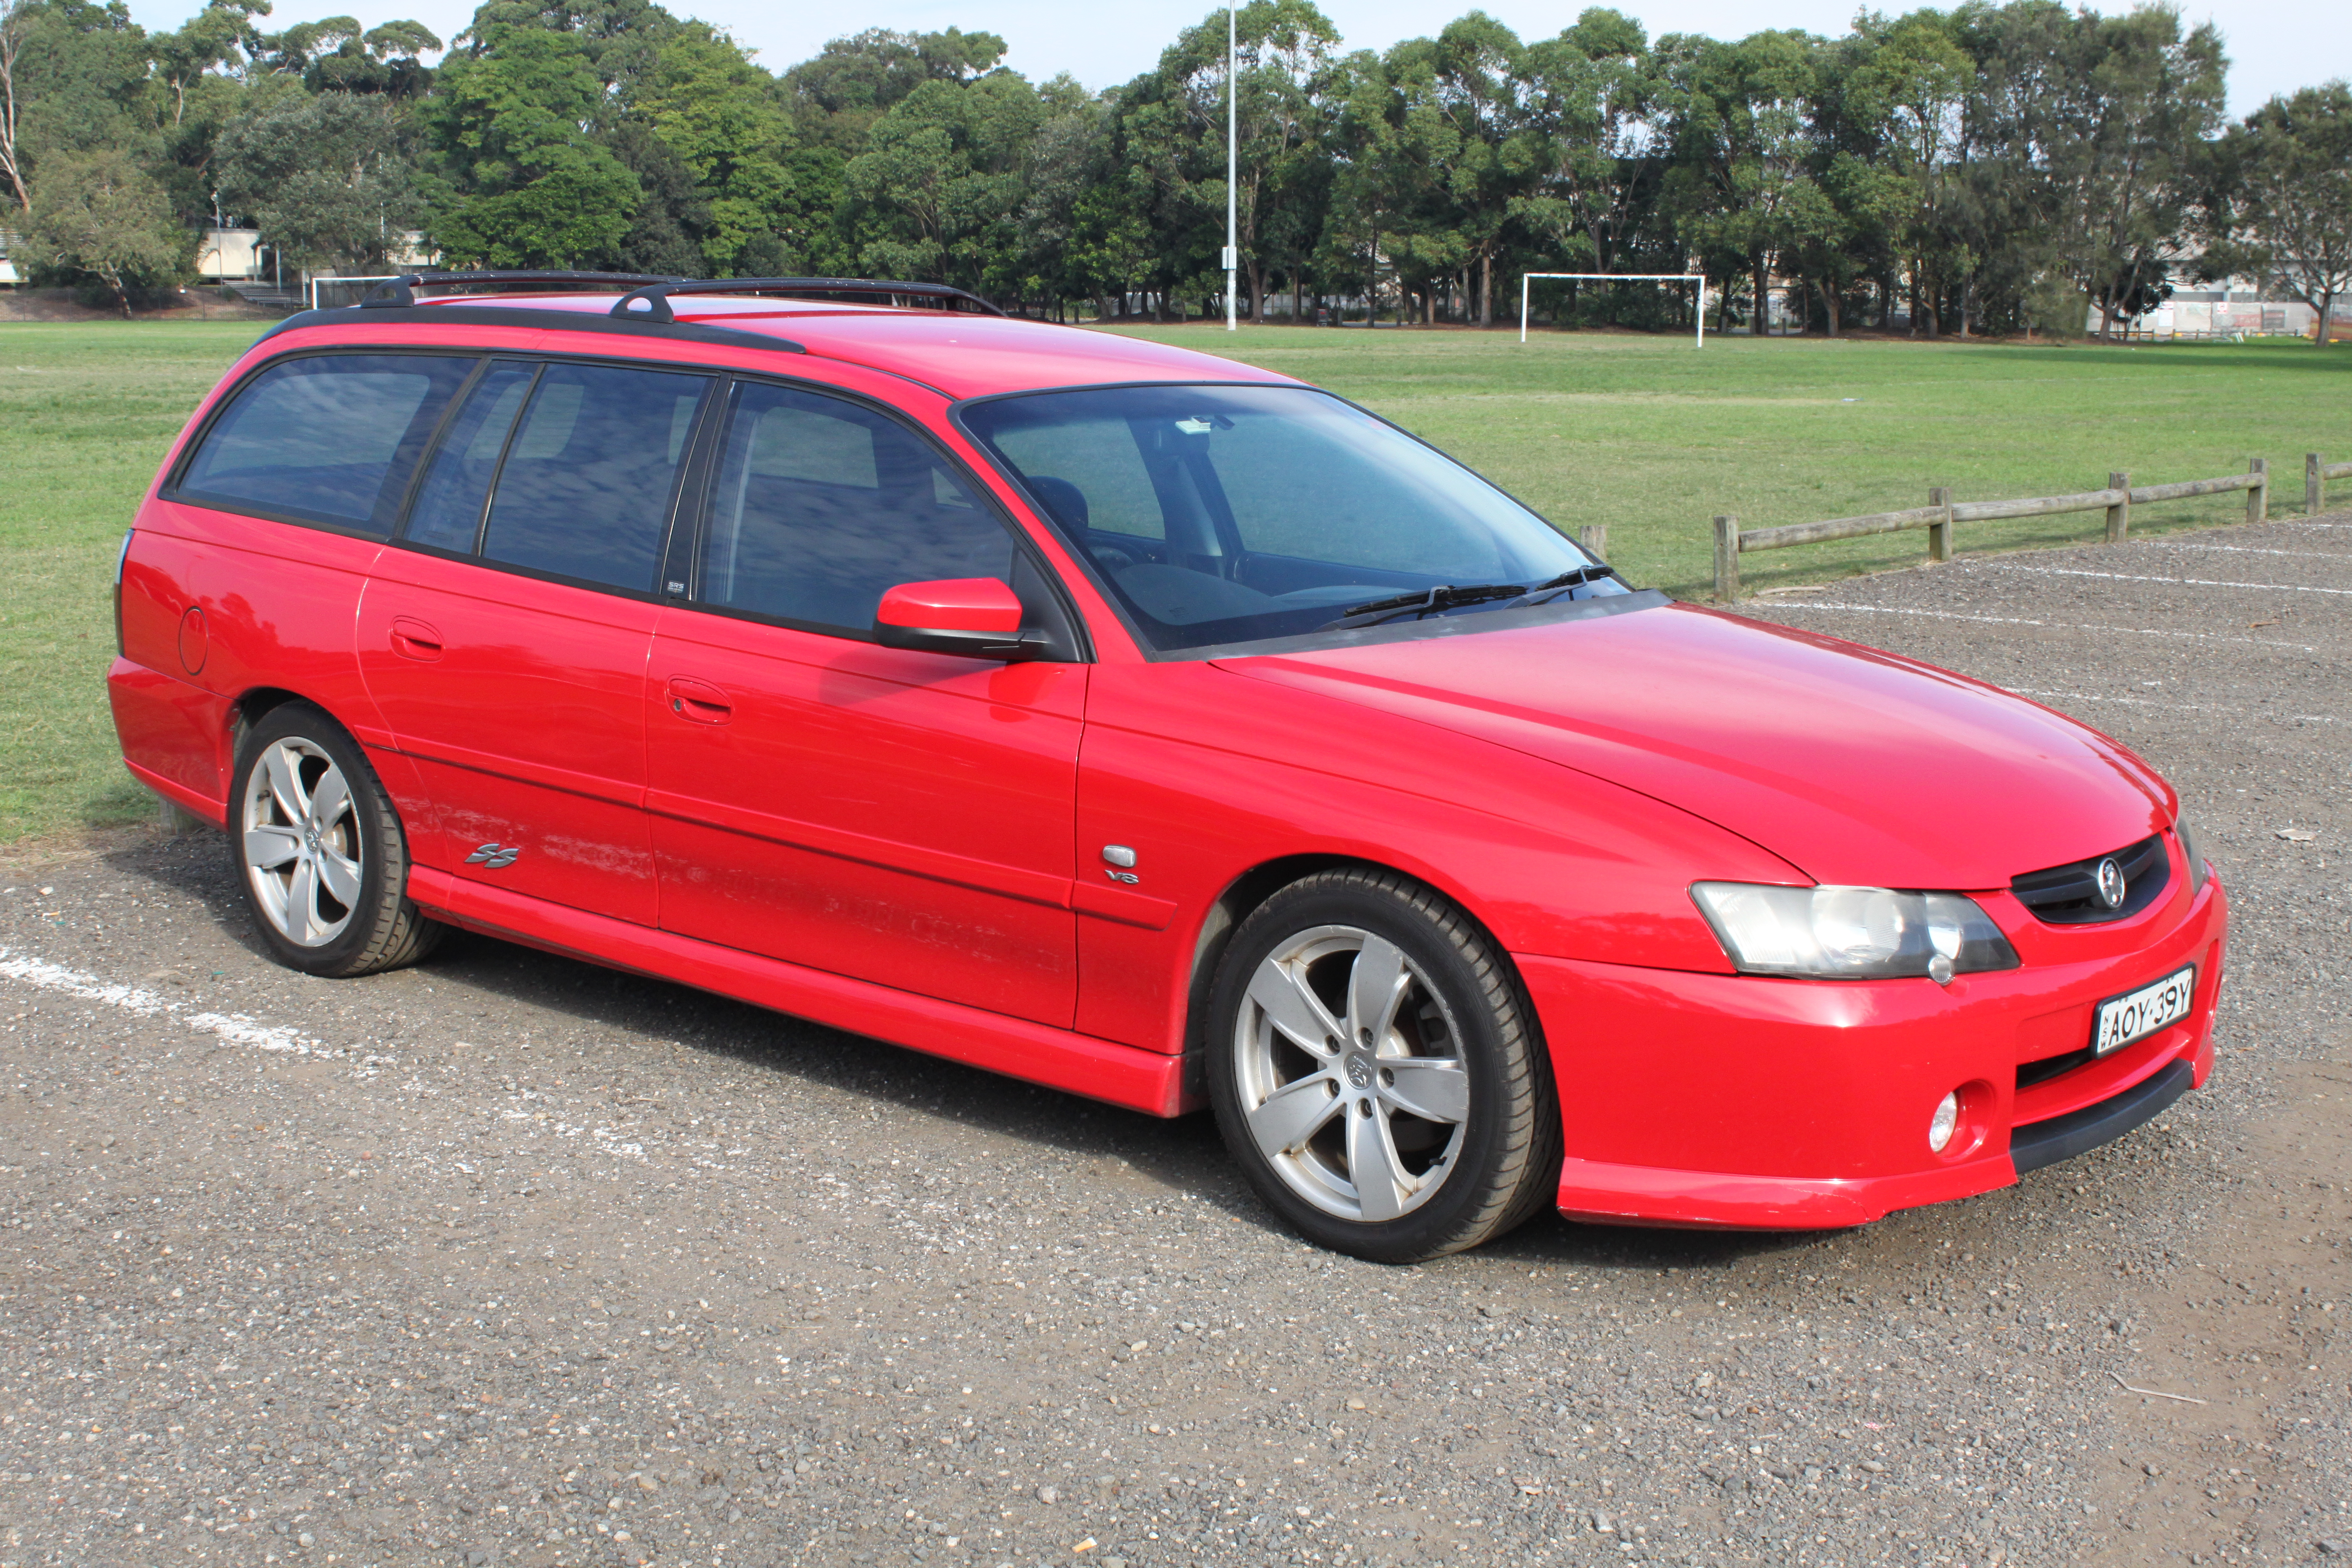 File2003 holden commodore vy ss station wagon 26360629036g file2003 holden commodore vy ss station wagon 26360629036g vanachro Images